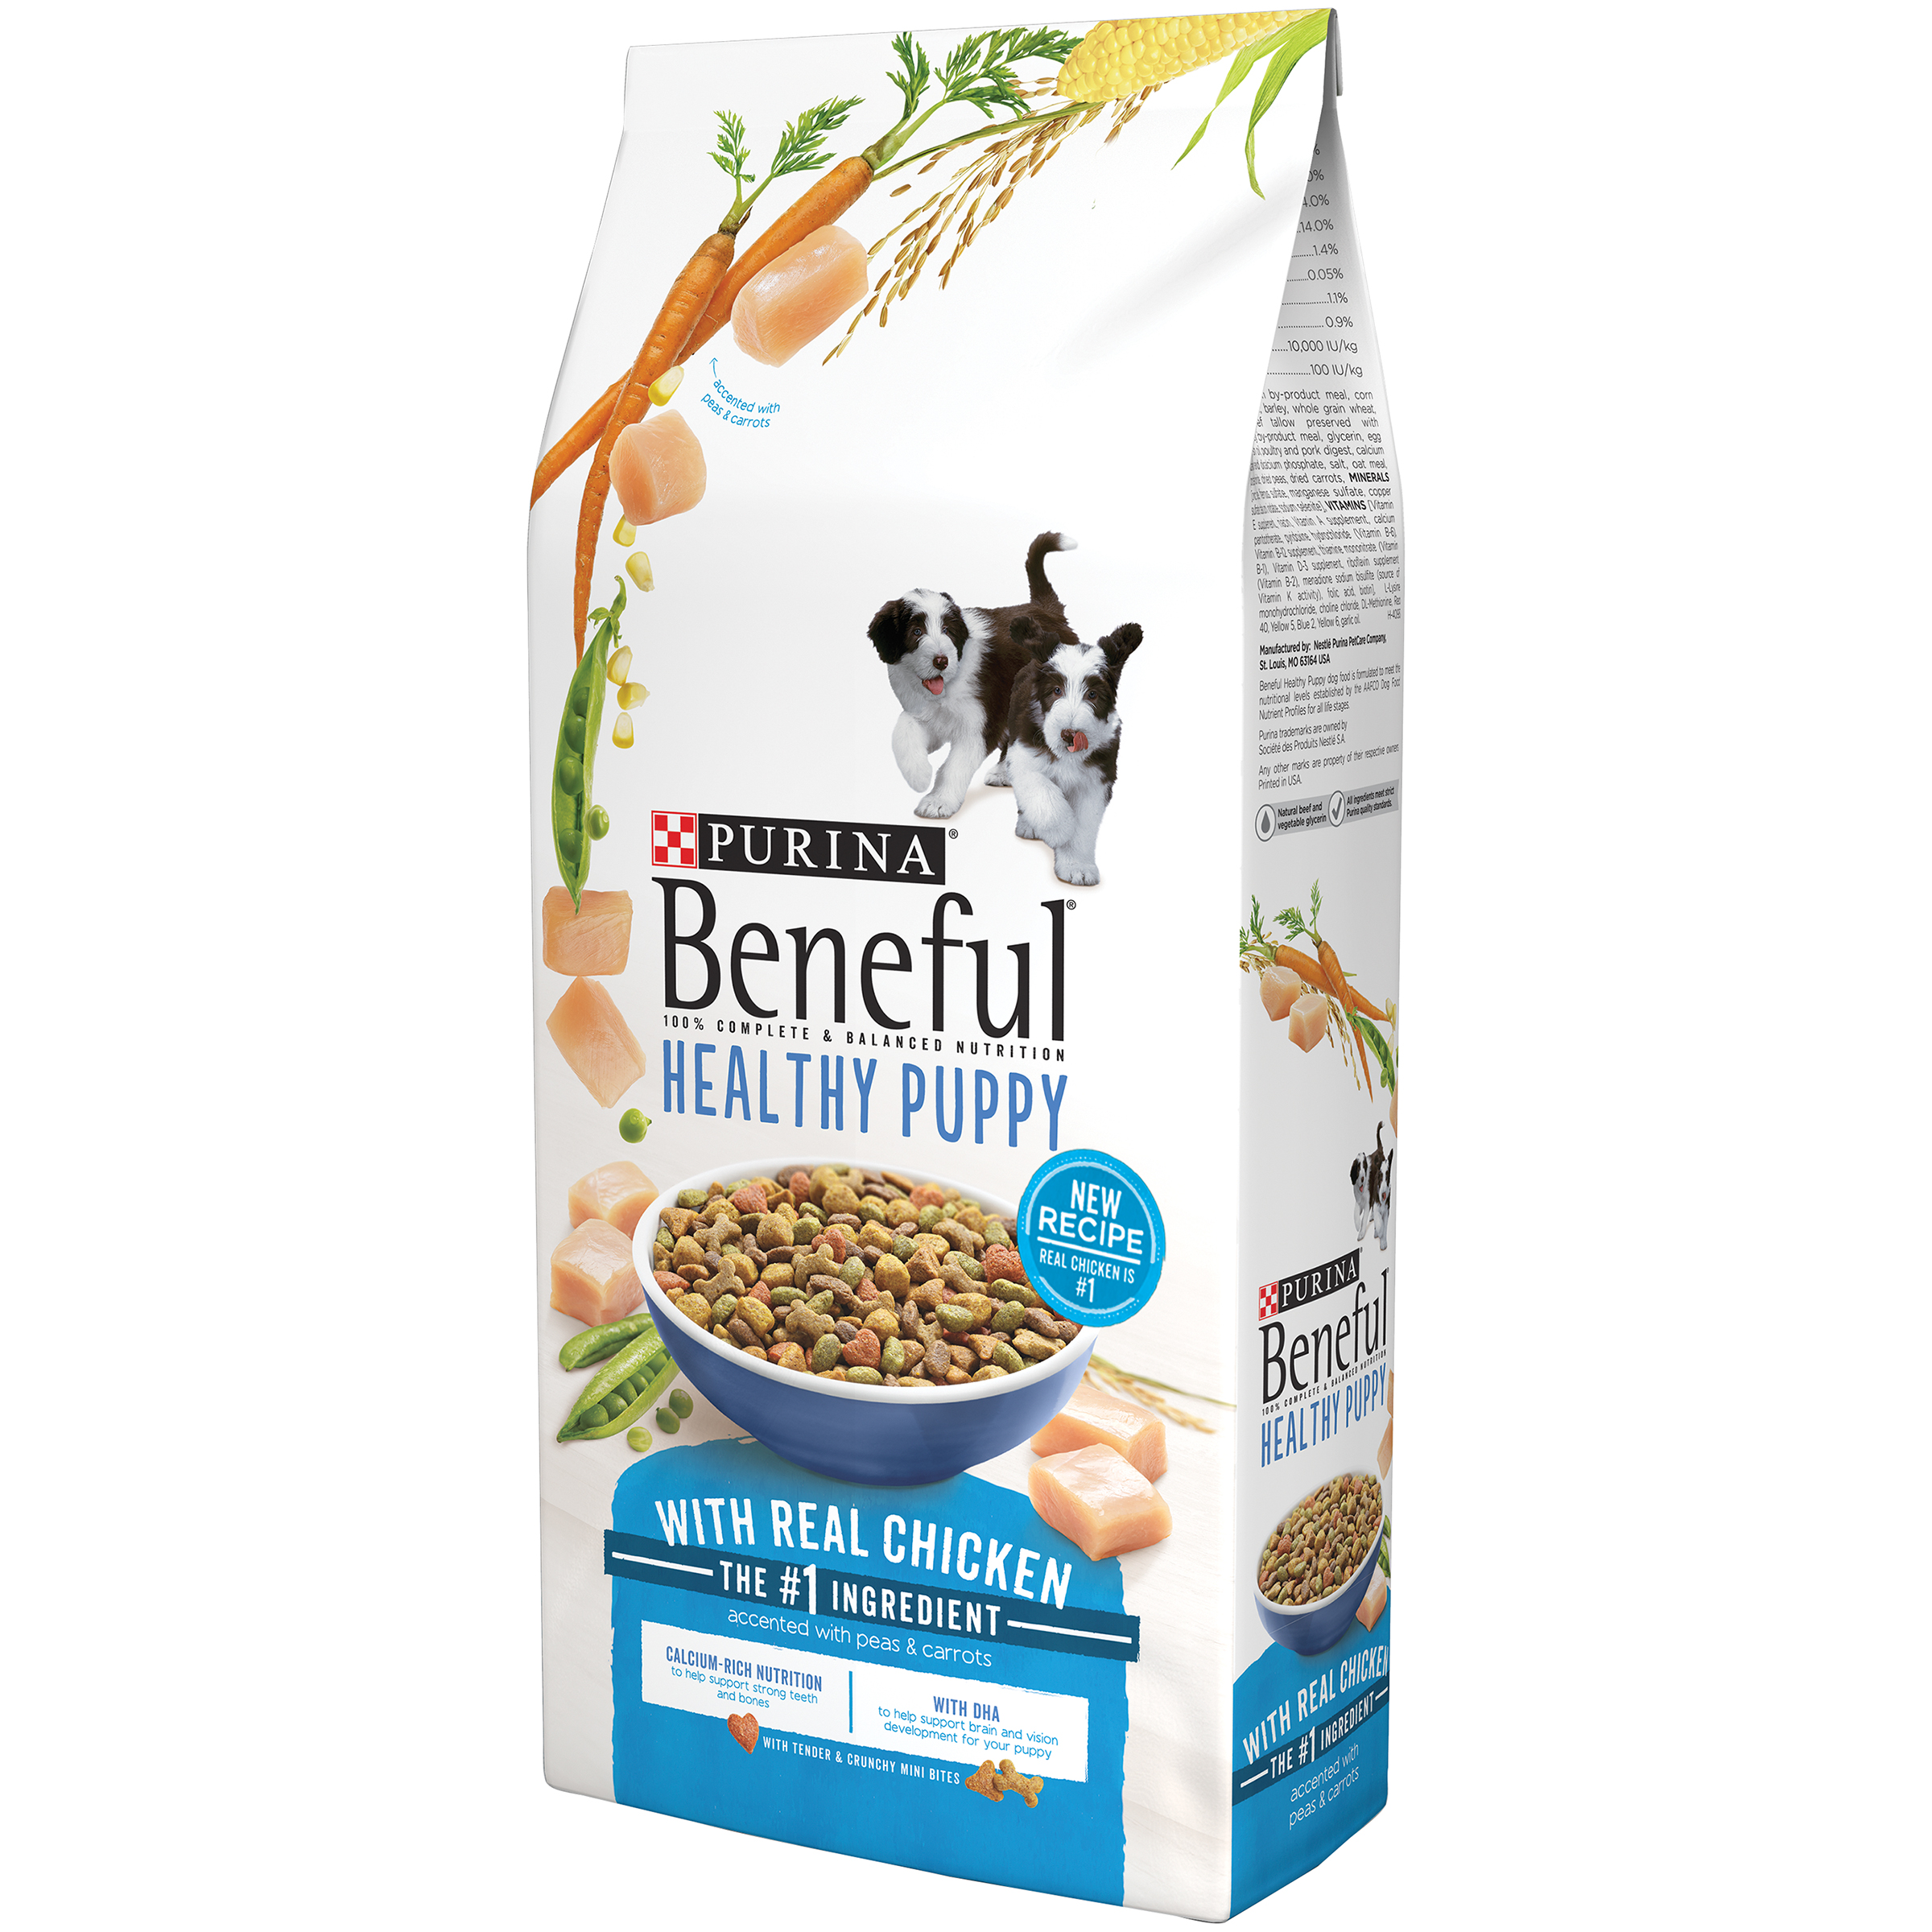 Purina Beneful Healthy Puppy Dry Dog Food - 15.5 lb. Bag